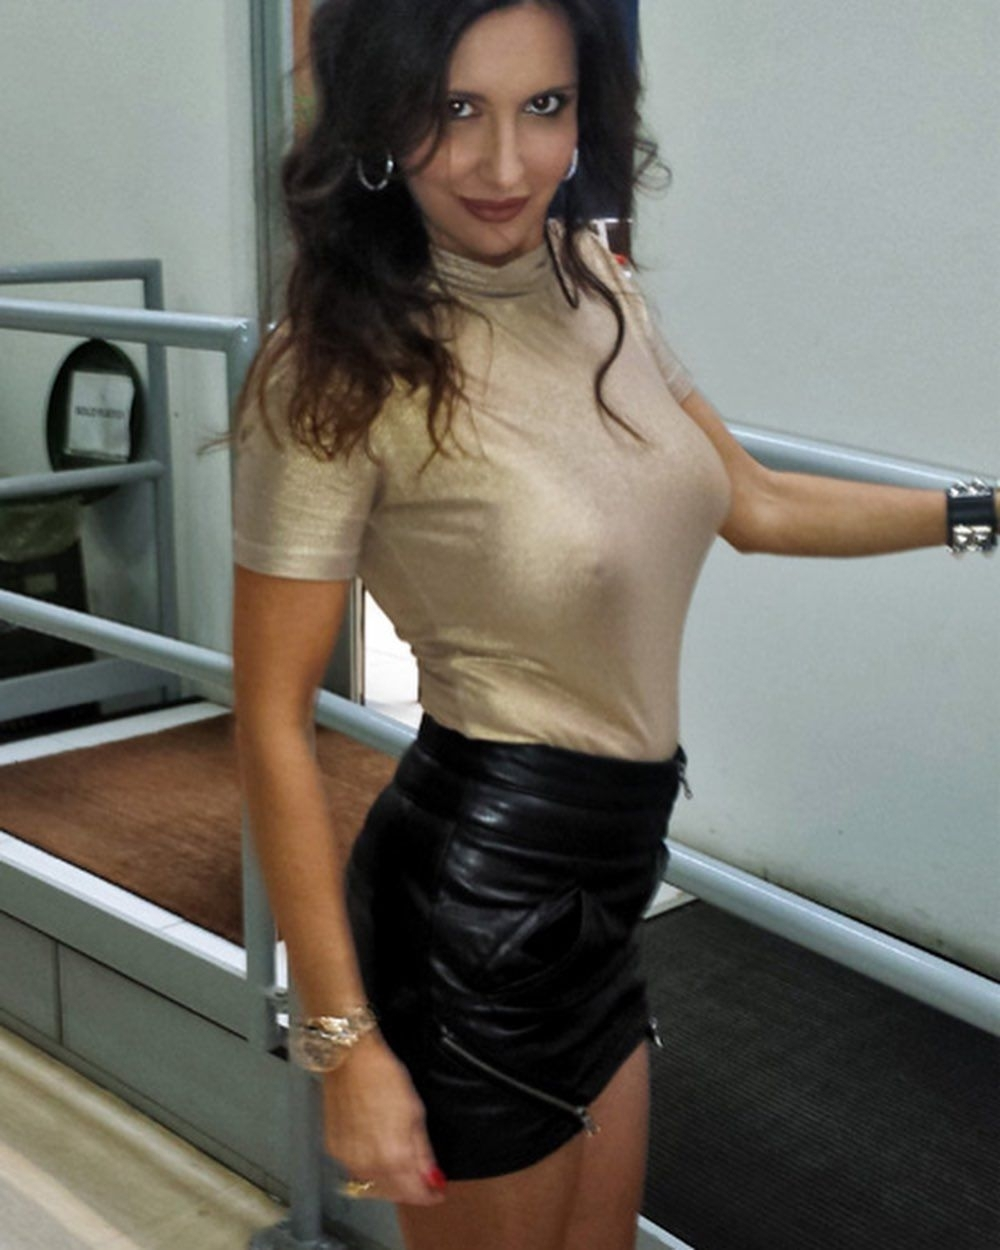 Pin On The Mature Woman 3